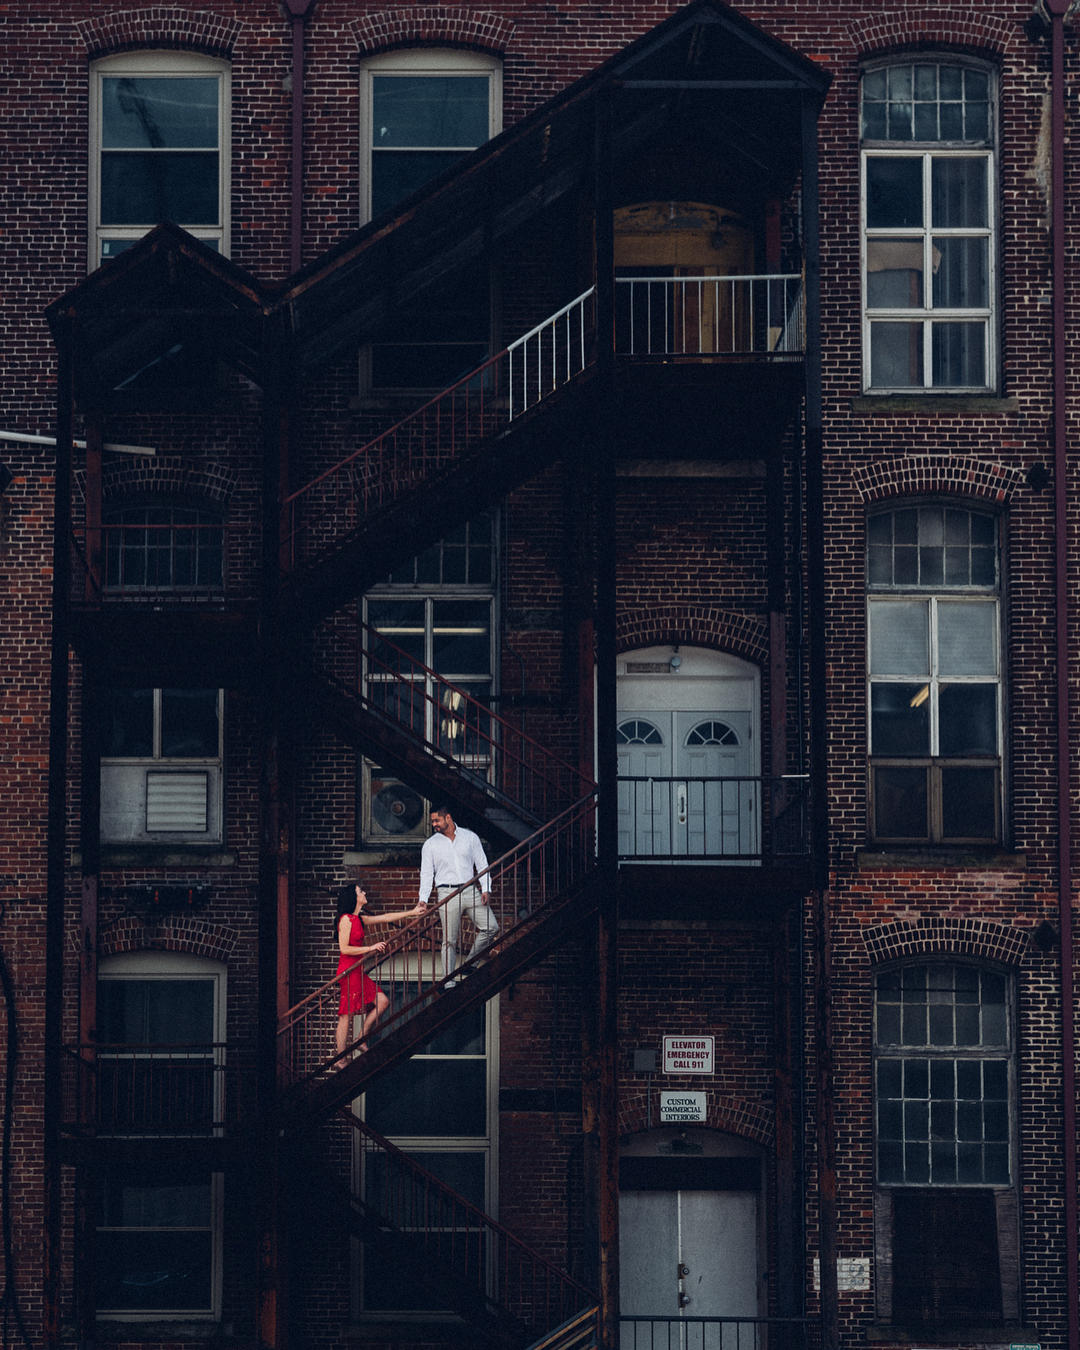 Wonderful engagement shot of a couple on a fire escape.